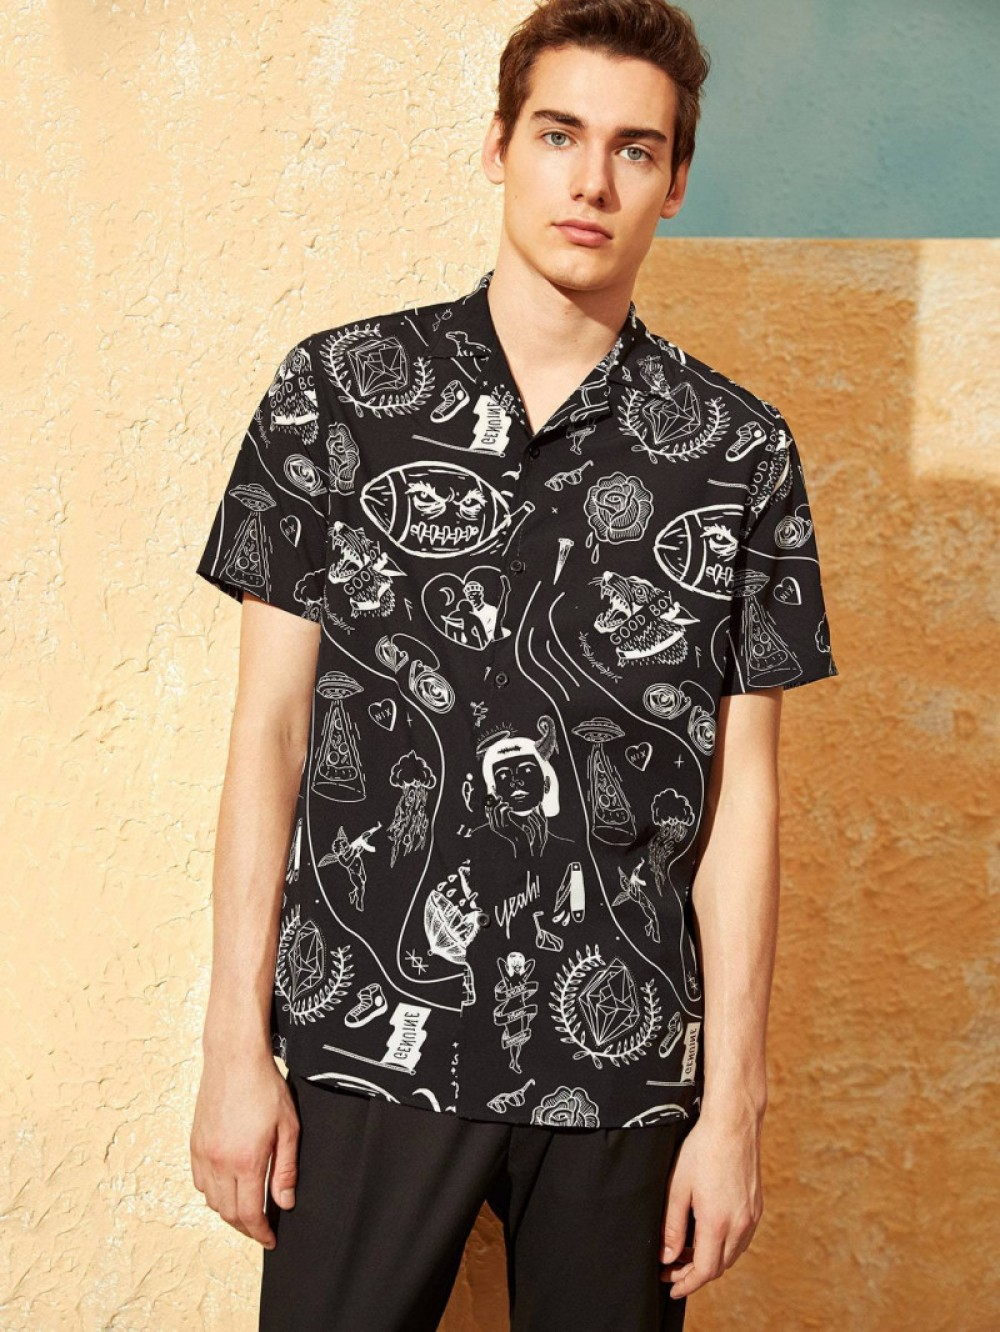 Flattering Shirt Revere Collar Black Graffiti Print Shirt